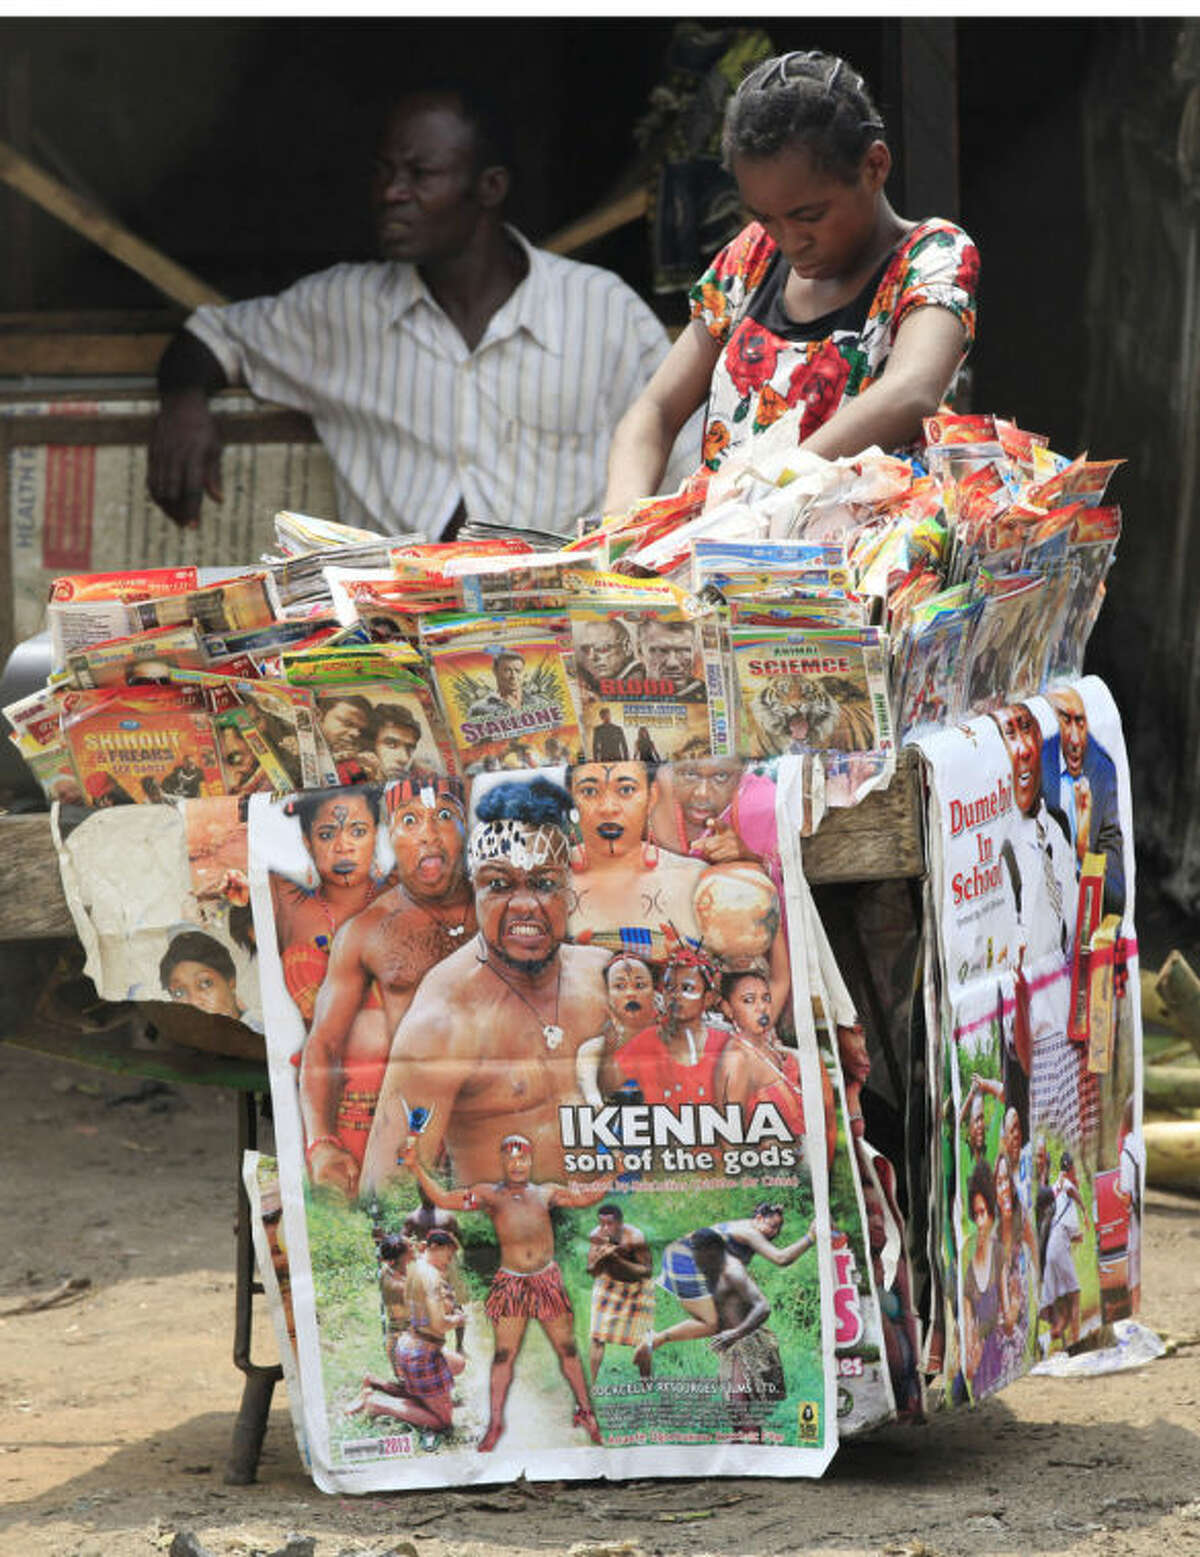 """In this photo taken Friday, Jan, 24. 2014, a woman shops for Nollywood DVD's on a street in Lagos, Nigeria. A 15-second drum roll and the title of the film, ?""""Deceptive Heart,?"""" comes crashing onto the screen in a groovy 1970s font. Less than 10 minutes into the Nollywood movie, the heart of plot is revealed: A woman has two boyfriends and doesn?'t know what to do. The story moves as quickly as the film appears to have been shot. Some scenes are shaky, with cameras clearly in need of a tripod, and musical montages are often filled with pans of the same building. Most Nollywood movies are made in less than 10 days and cost about $25,000. (AP Photo/ Sunday Alamba)"""